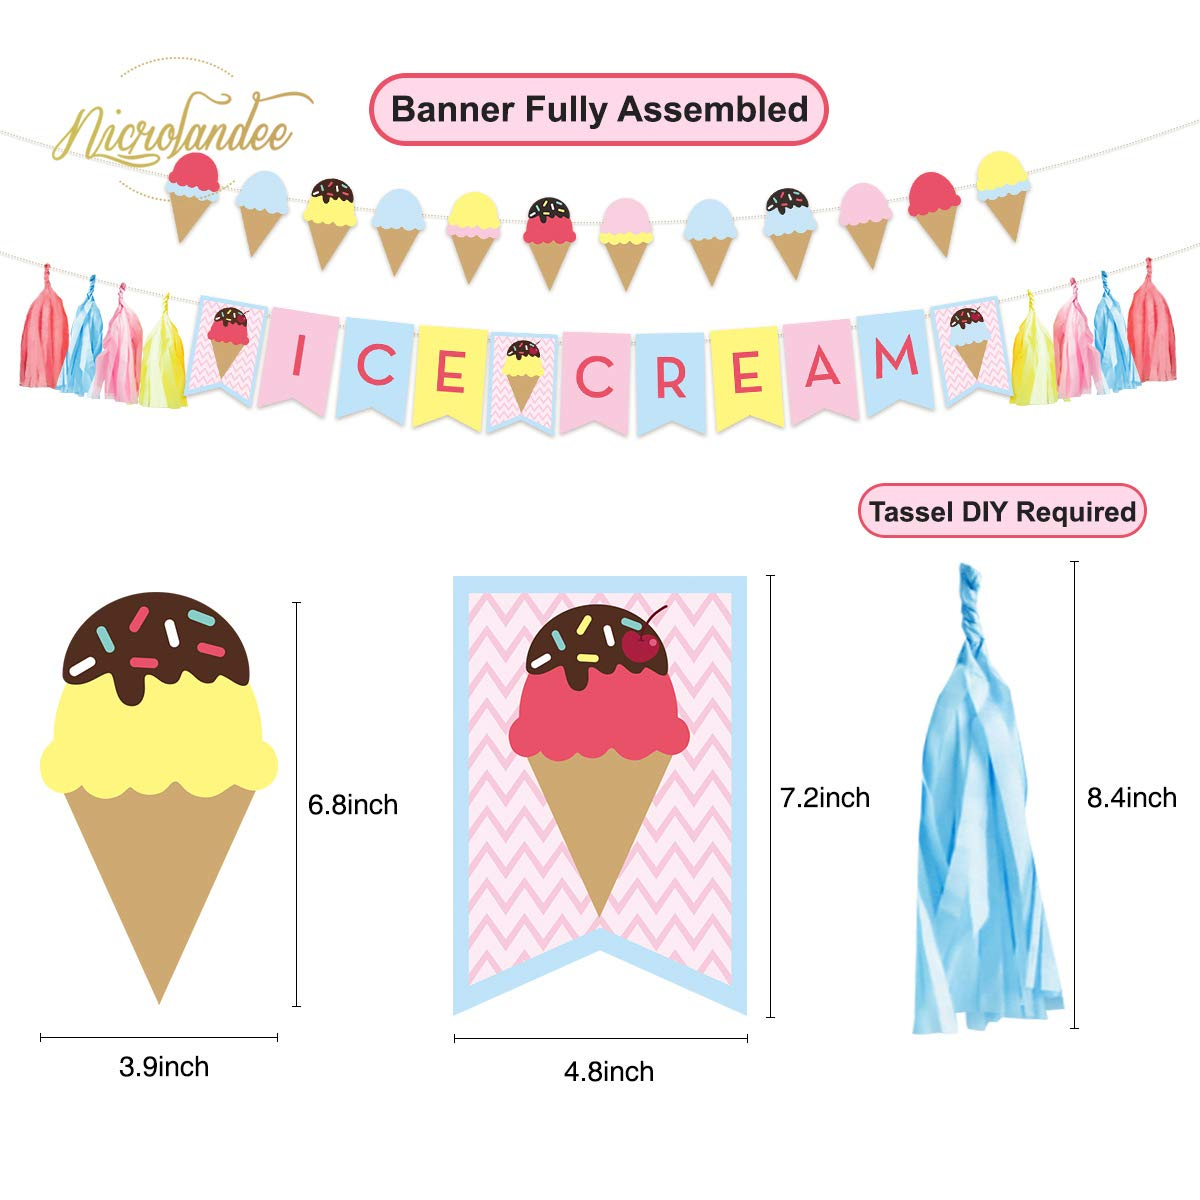 Popsicle Party Decor with Glitter Banner Paper Lantern Honeycomb Ball Balloon for Kids Party Baby Shower Nursery Summer Luau Party Decor NICROLANDEE Ice Cream Party Decoration